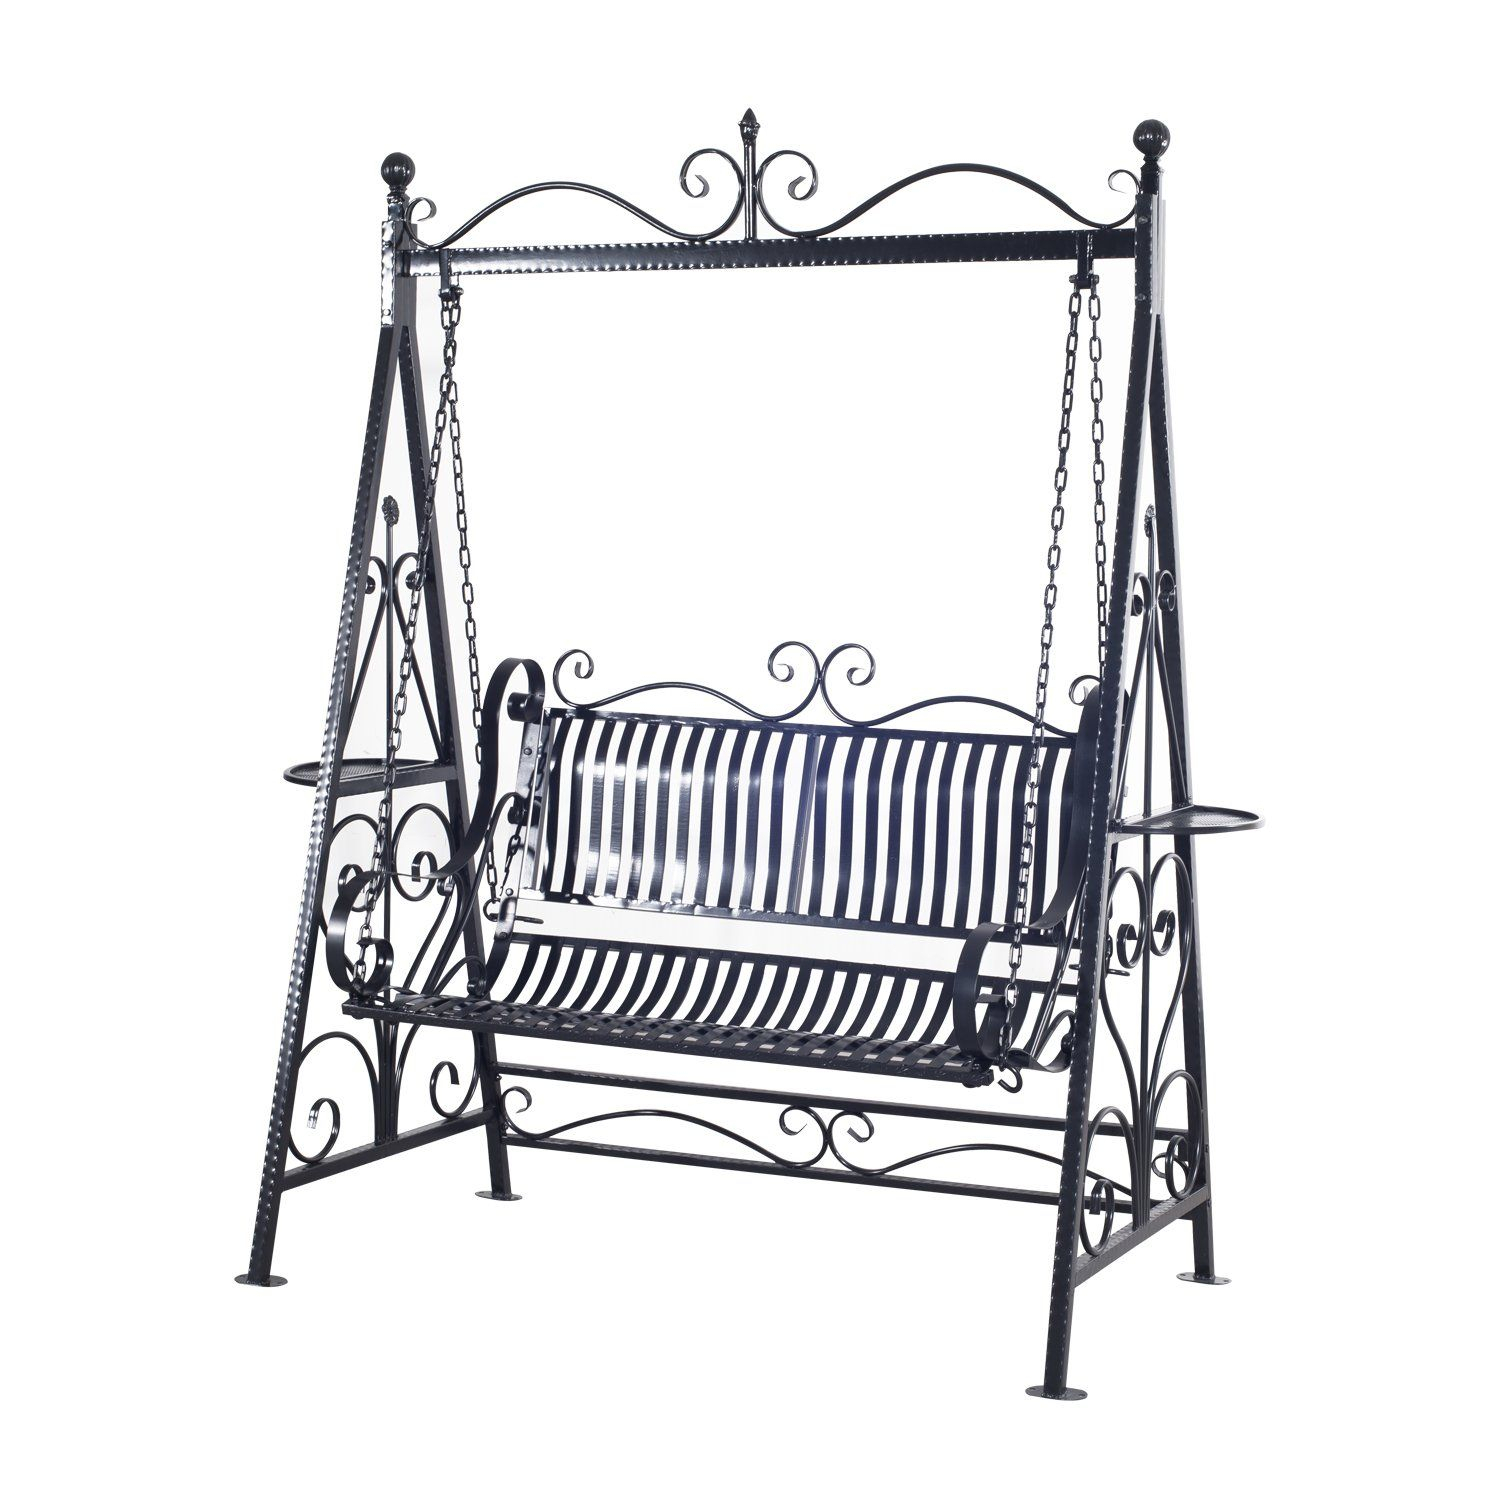 Outsunny Garden Metal Swing Chair Outdoor Patio Hammock Throughout 2 Person Hammered Bronze Iron Outdoor Swings (Image 15 of 25)